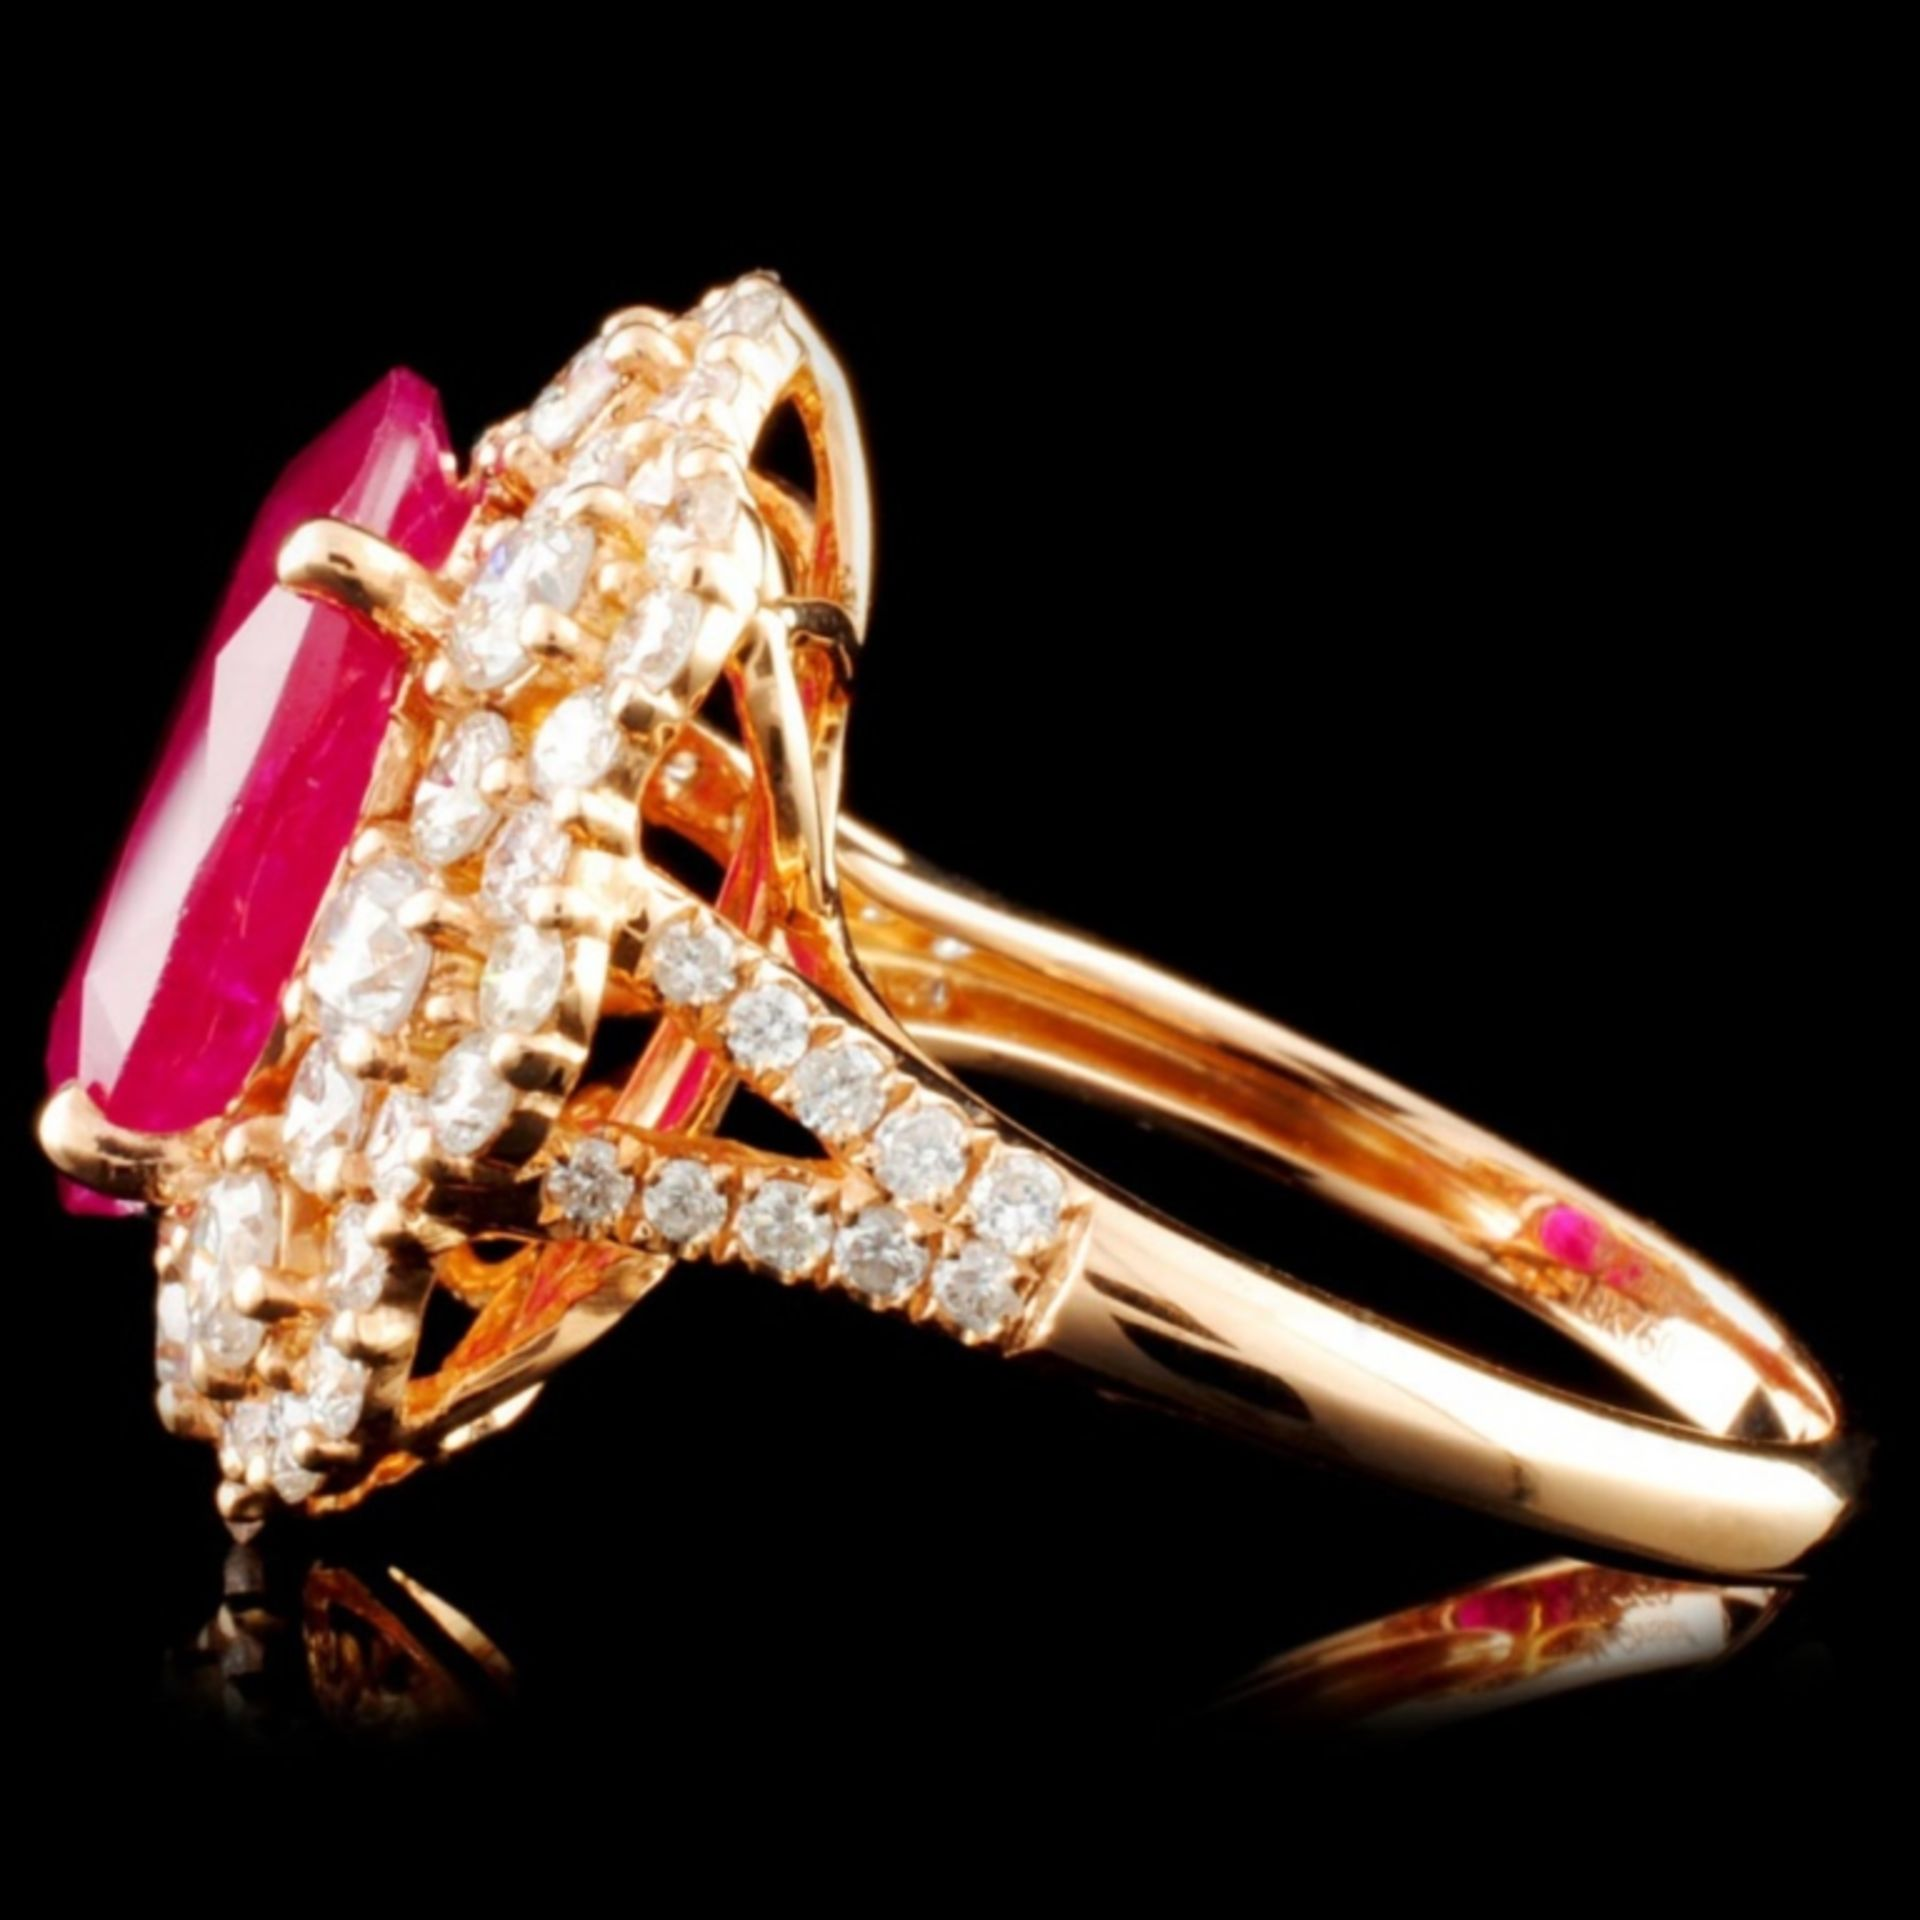 18K Gold 5.67ct Ruby & 2.08ctw Diamond Ring - Image 3 of 4